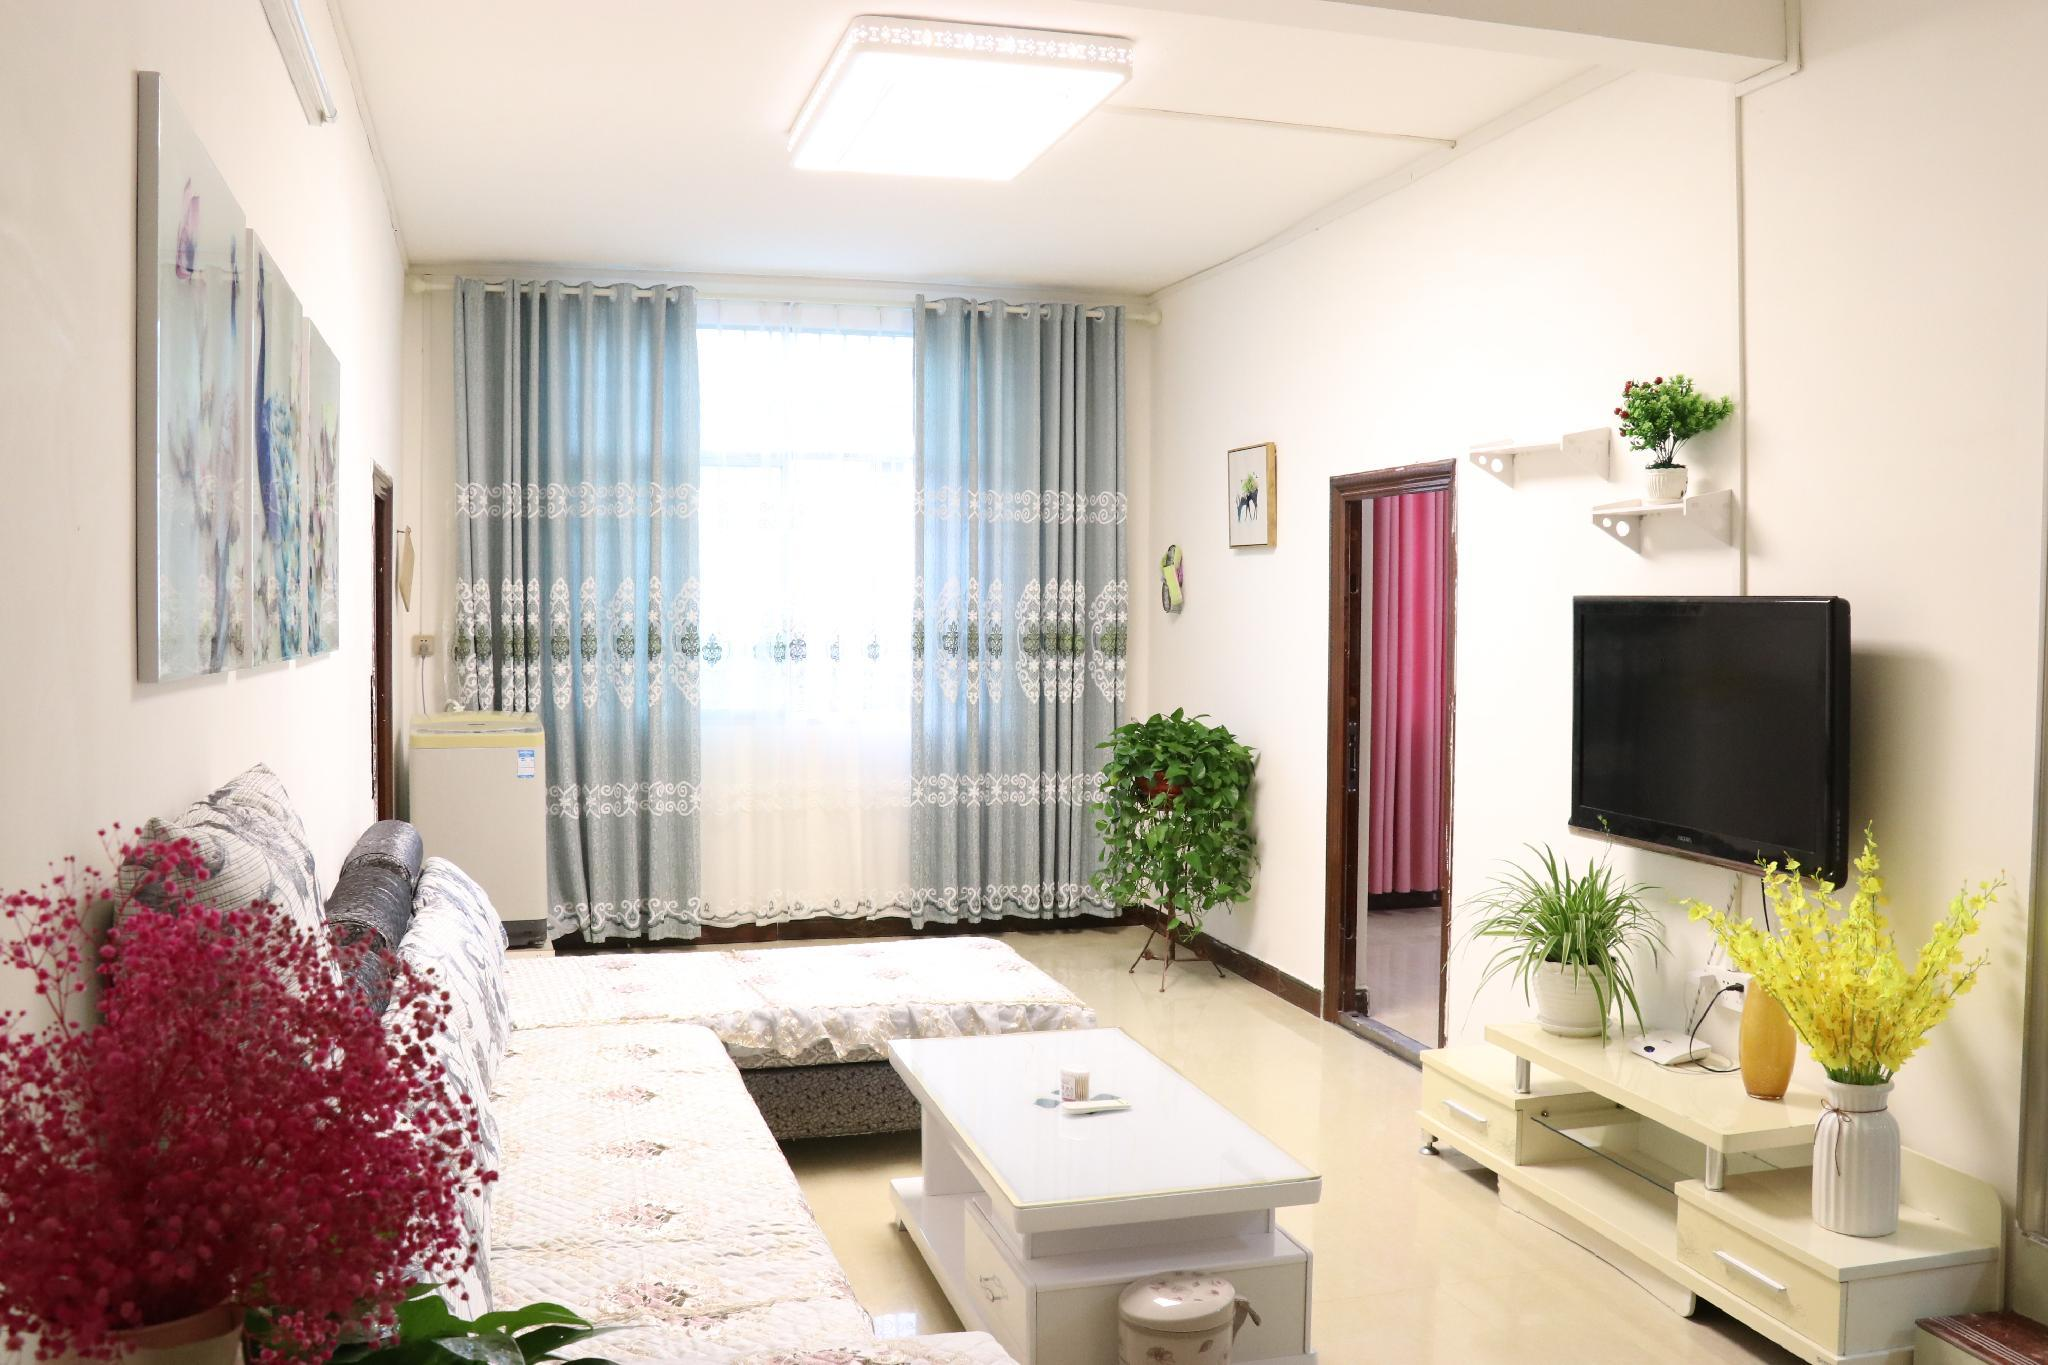 About Libo warm 3 bedroom